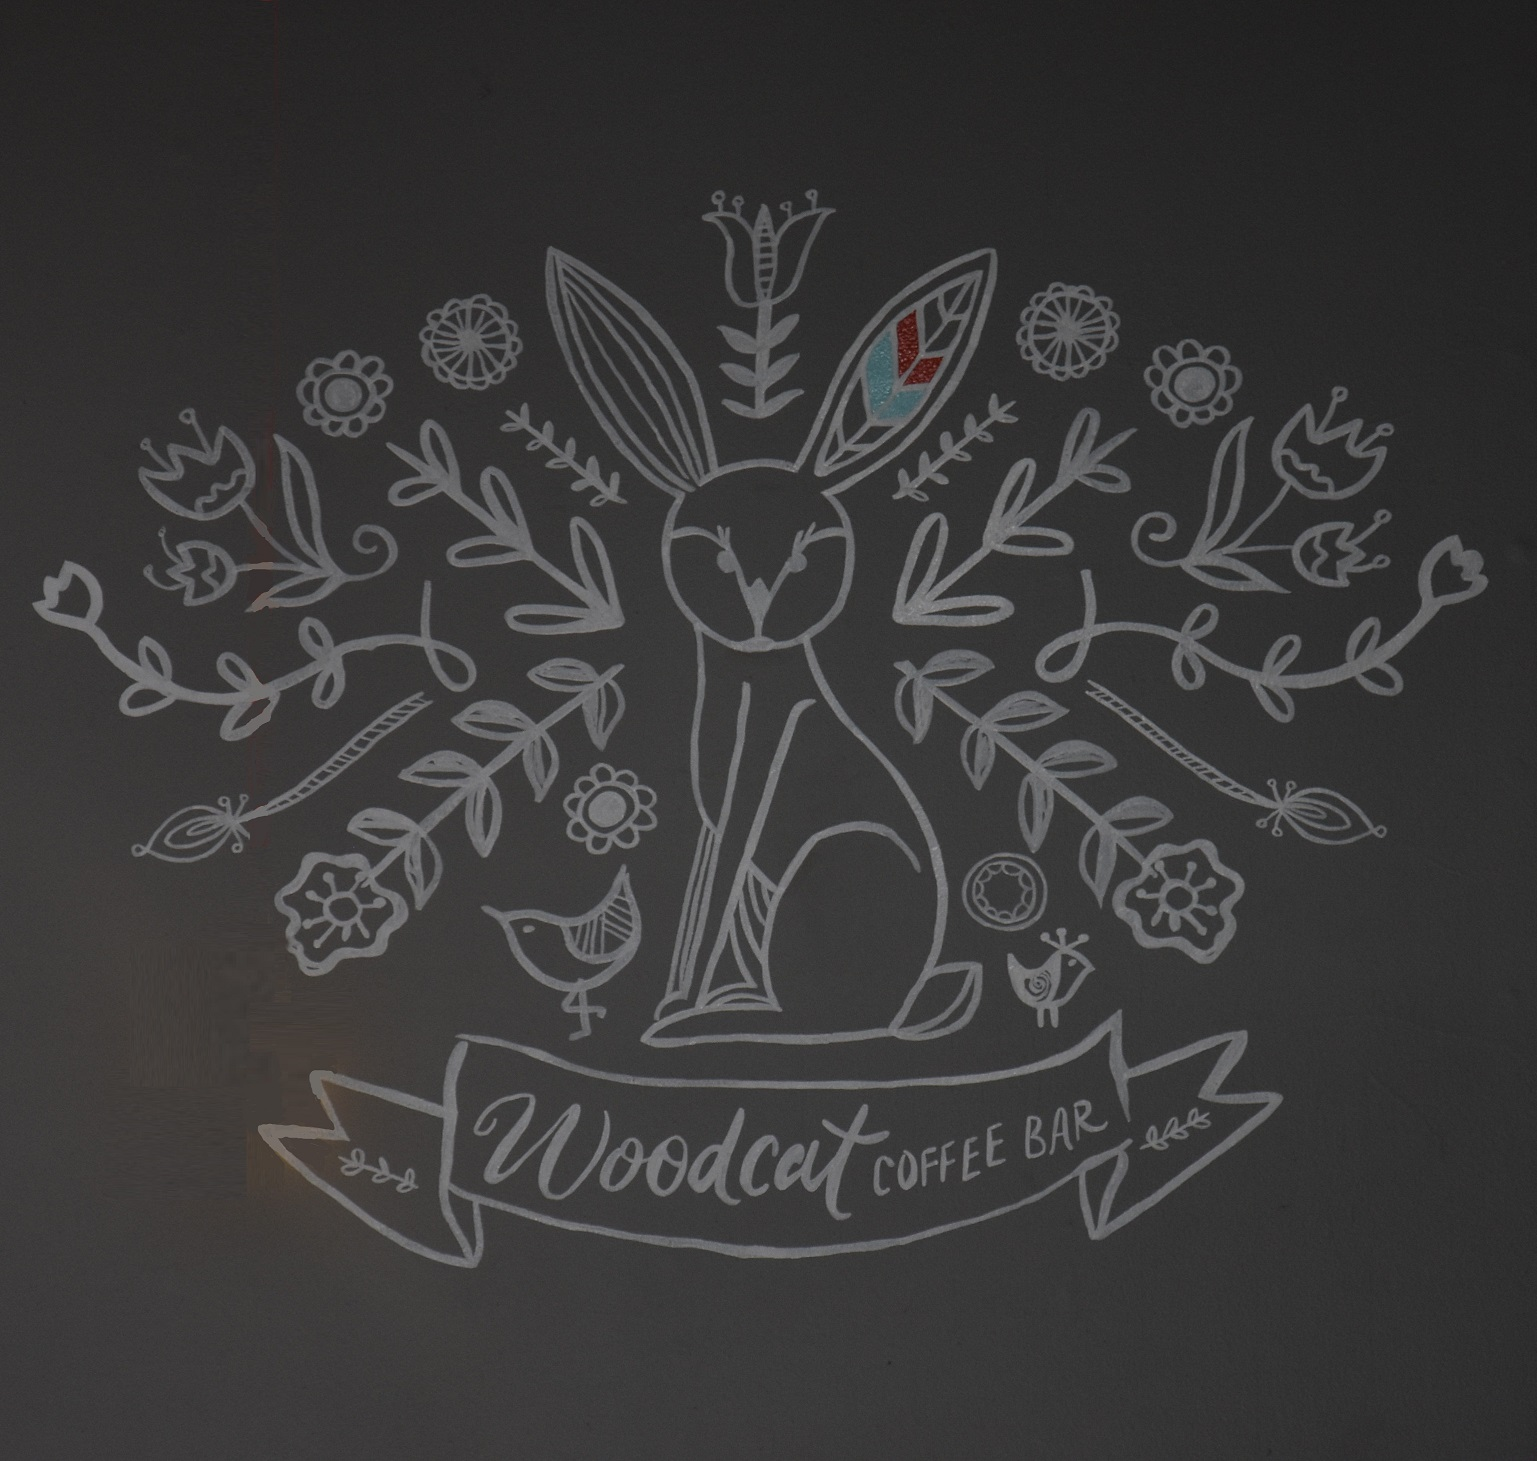 The Woodcat (it's a hare, by the way) logo from the wall behind the counter in Echo Park, Los Angeles.